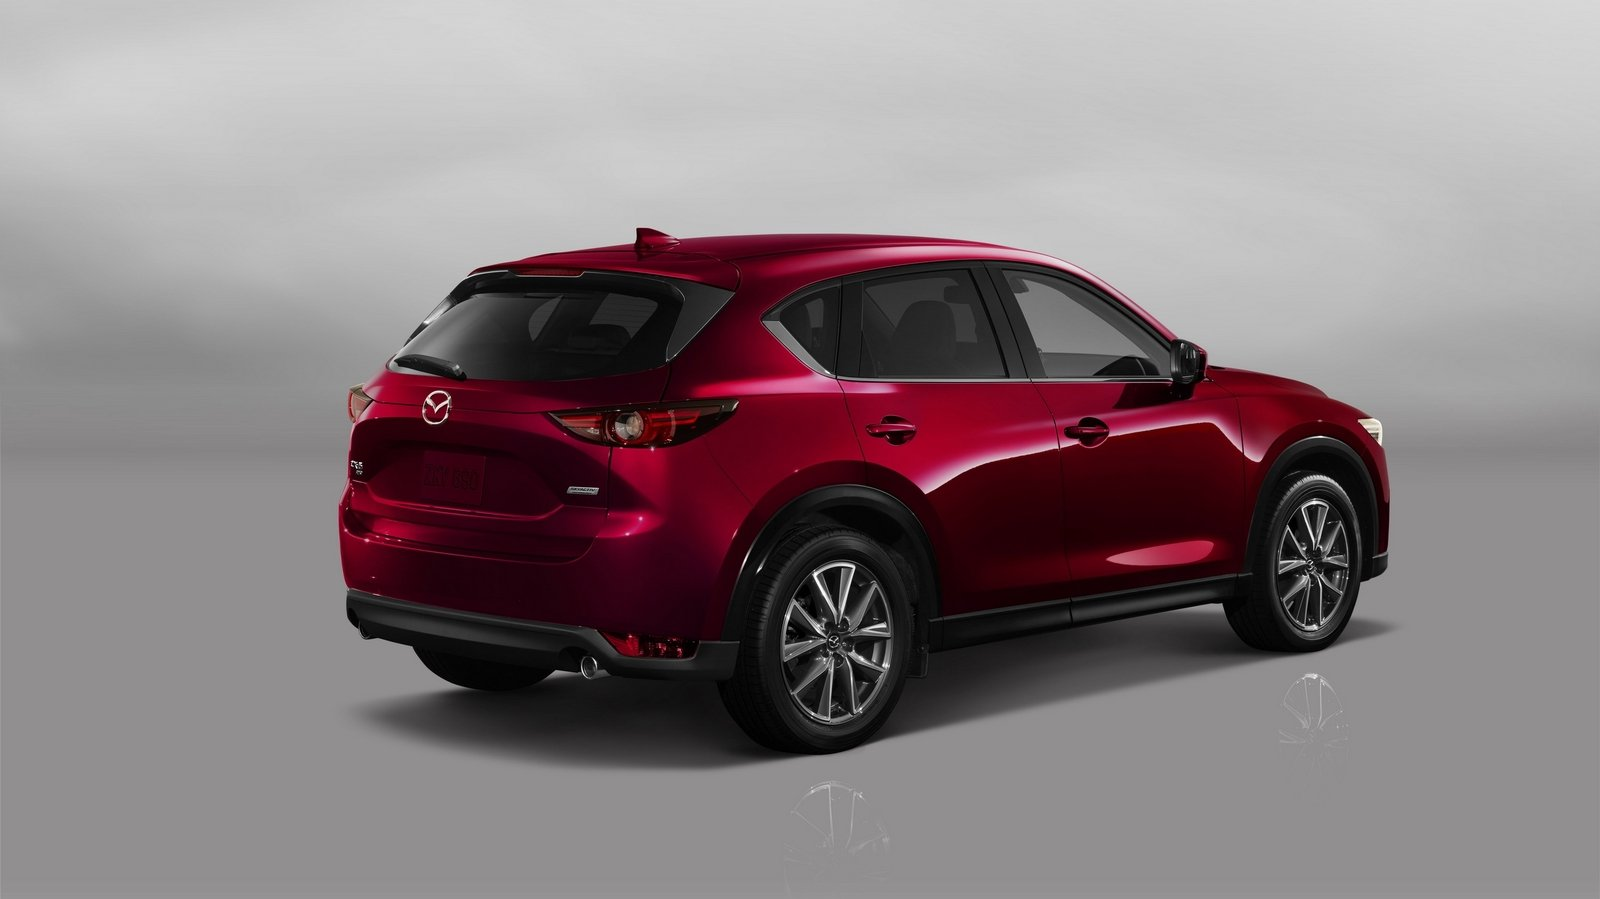 2017 mazda cx 5 picture 697554 car review top speed. Black Bedroom Furniture Sets. Home Design Ideas